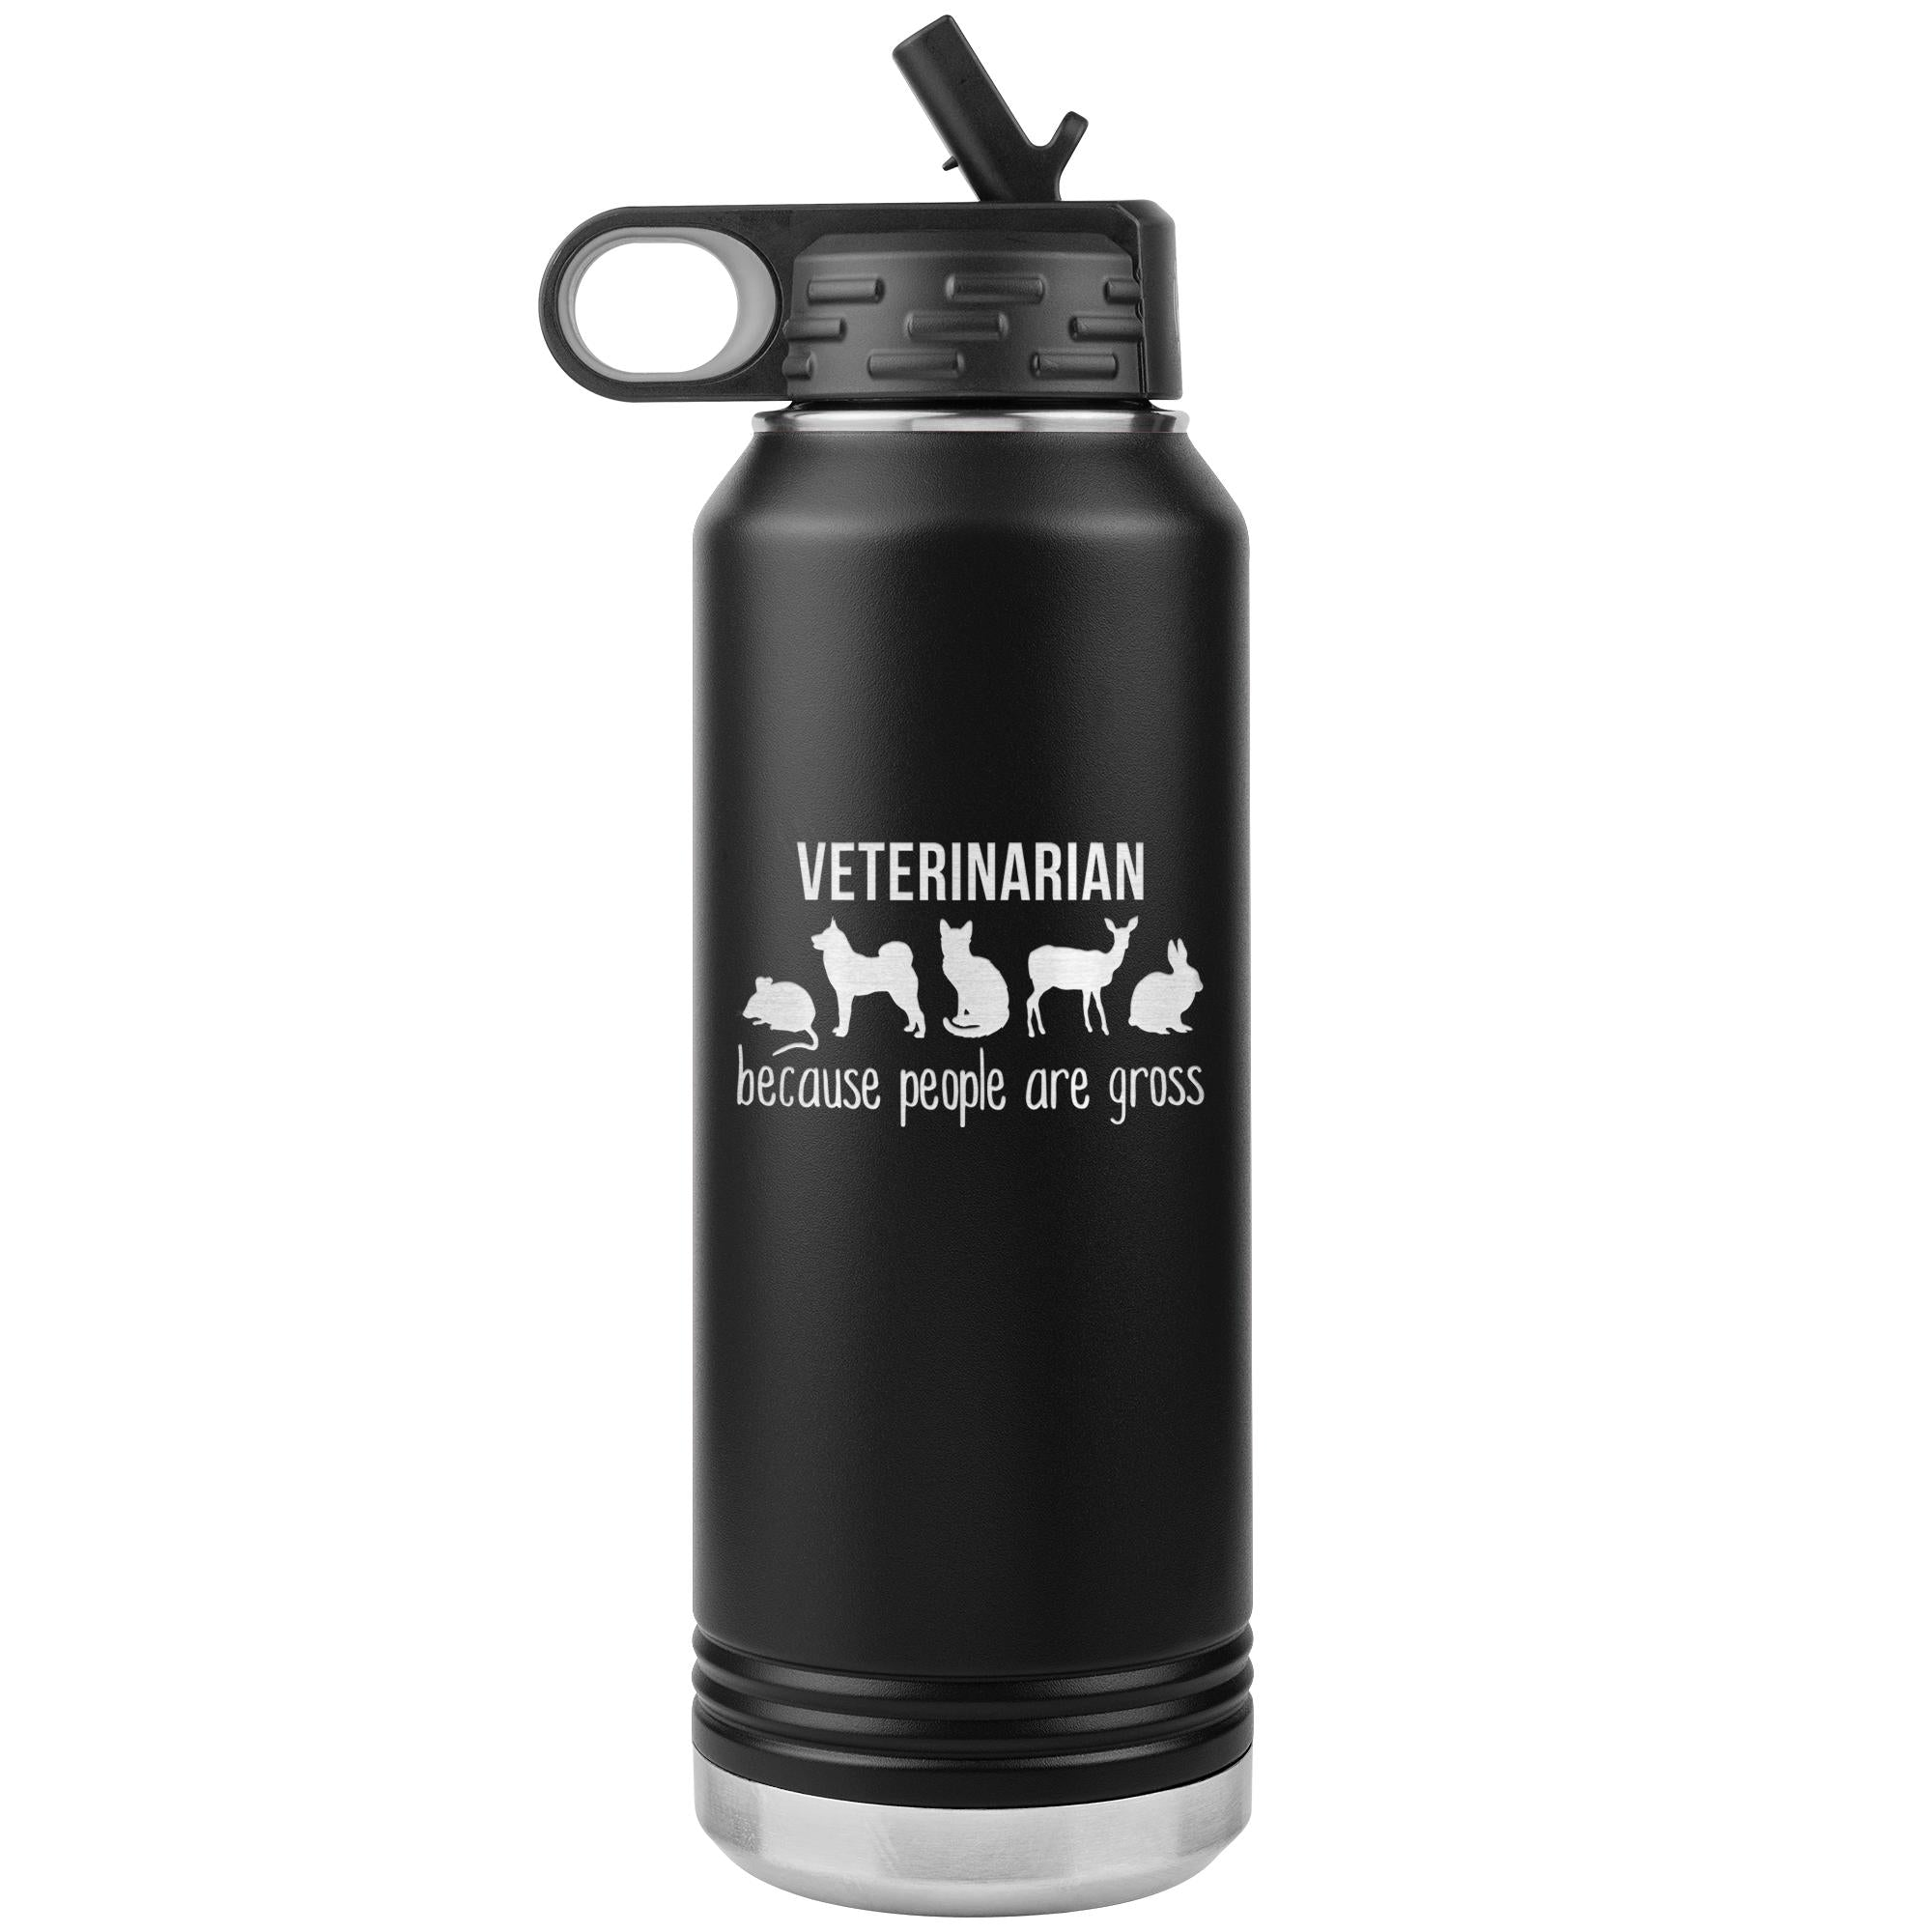 Veterinarian, because people are gross Water Bottle Tumbler 32 oz-Tumblers-I love Veterinary